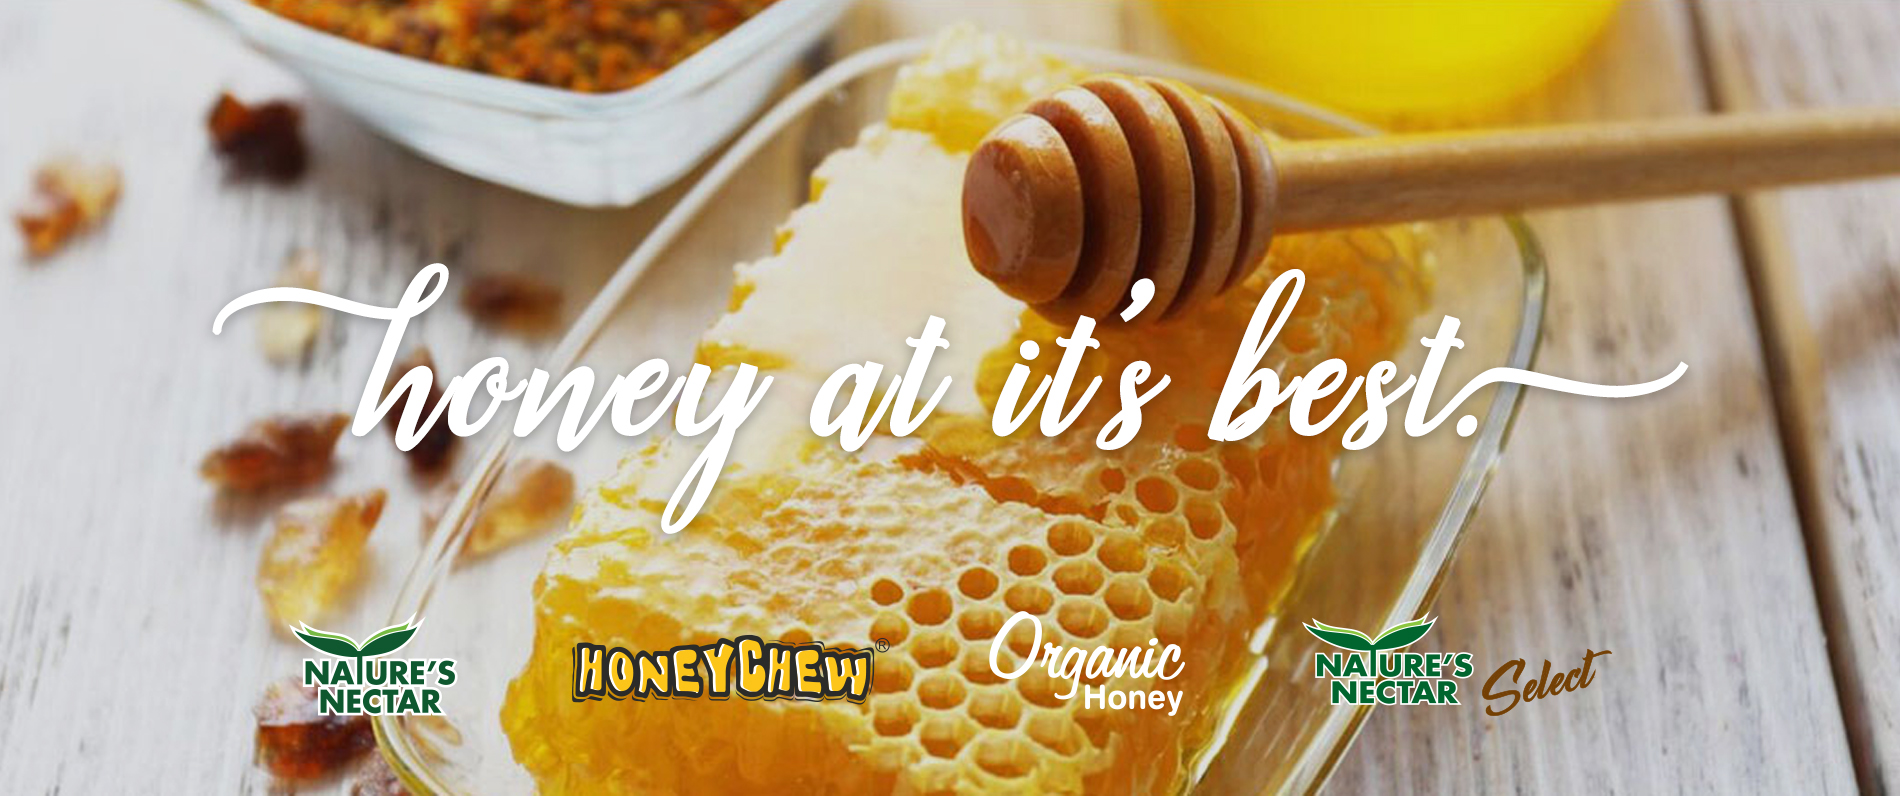 Indian Honey Manufacturers, Honey Suppliers From India